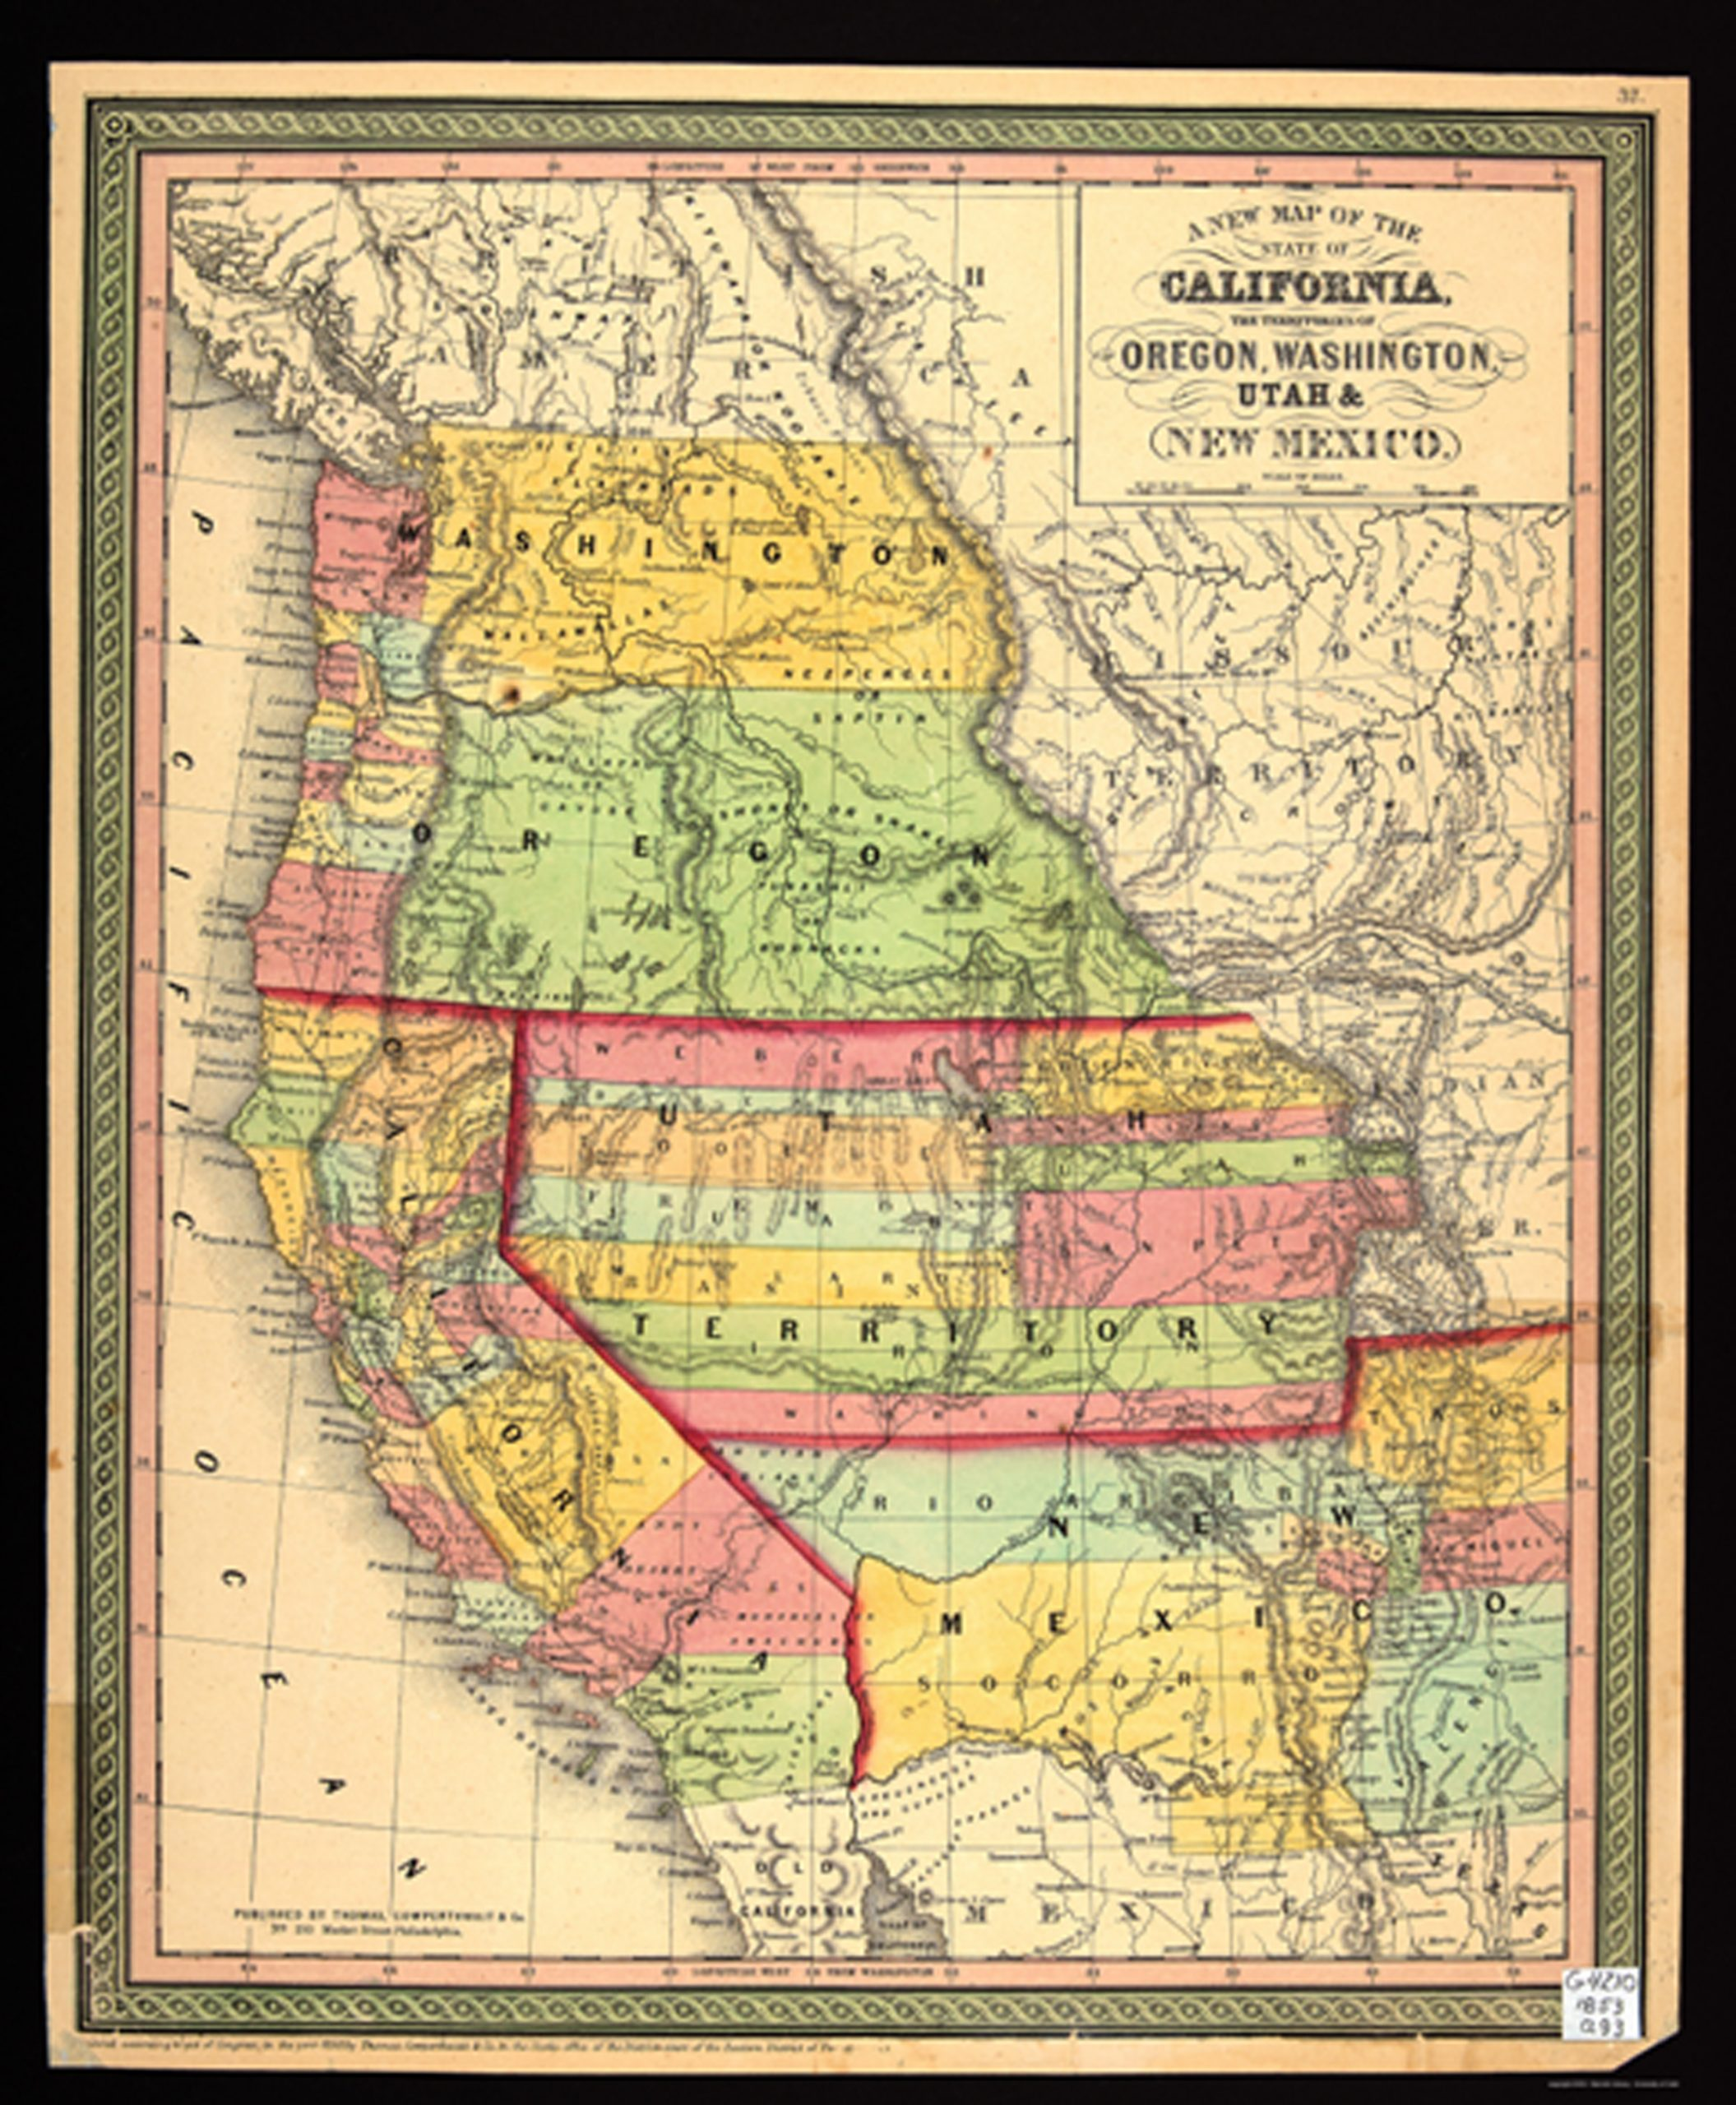 Early map of California, including the territories of Oregon, Washington, Utah and New Mexico, depicting the trails of the early Mormon migration in 1853.